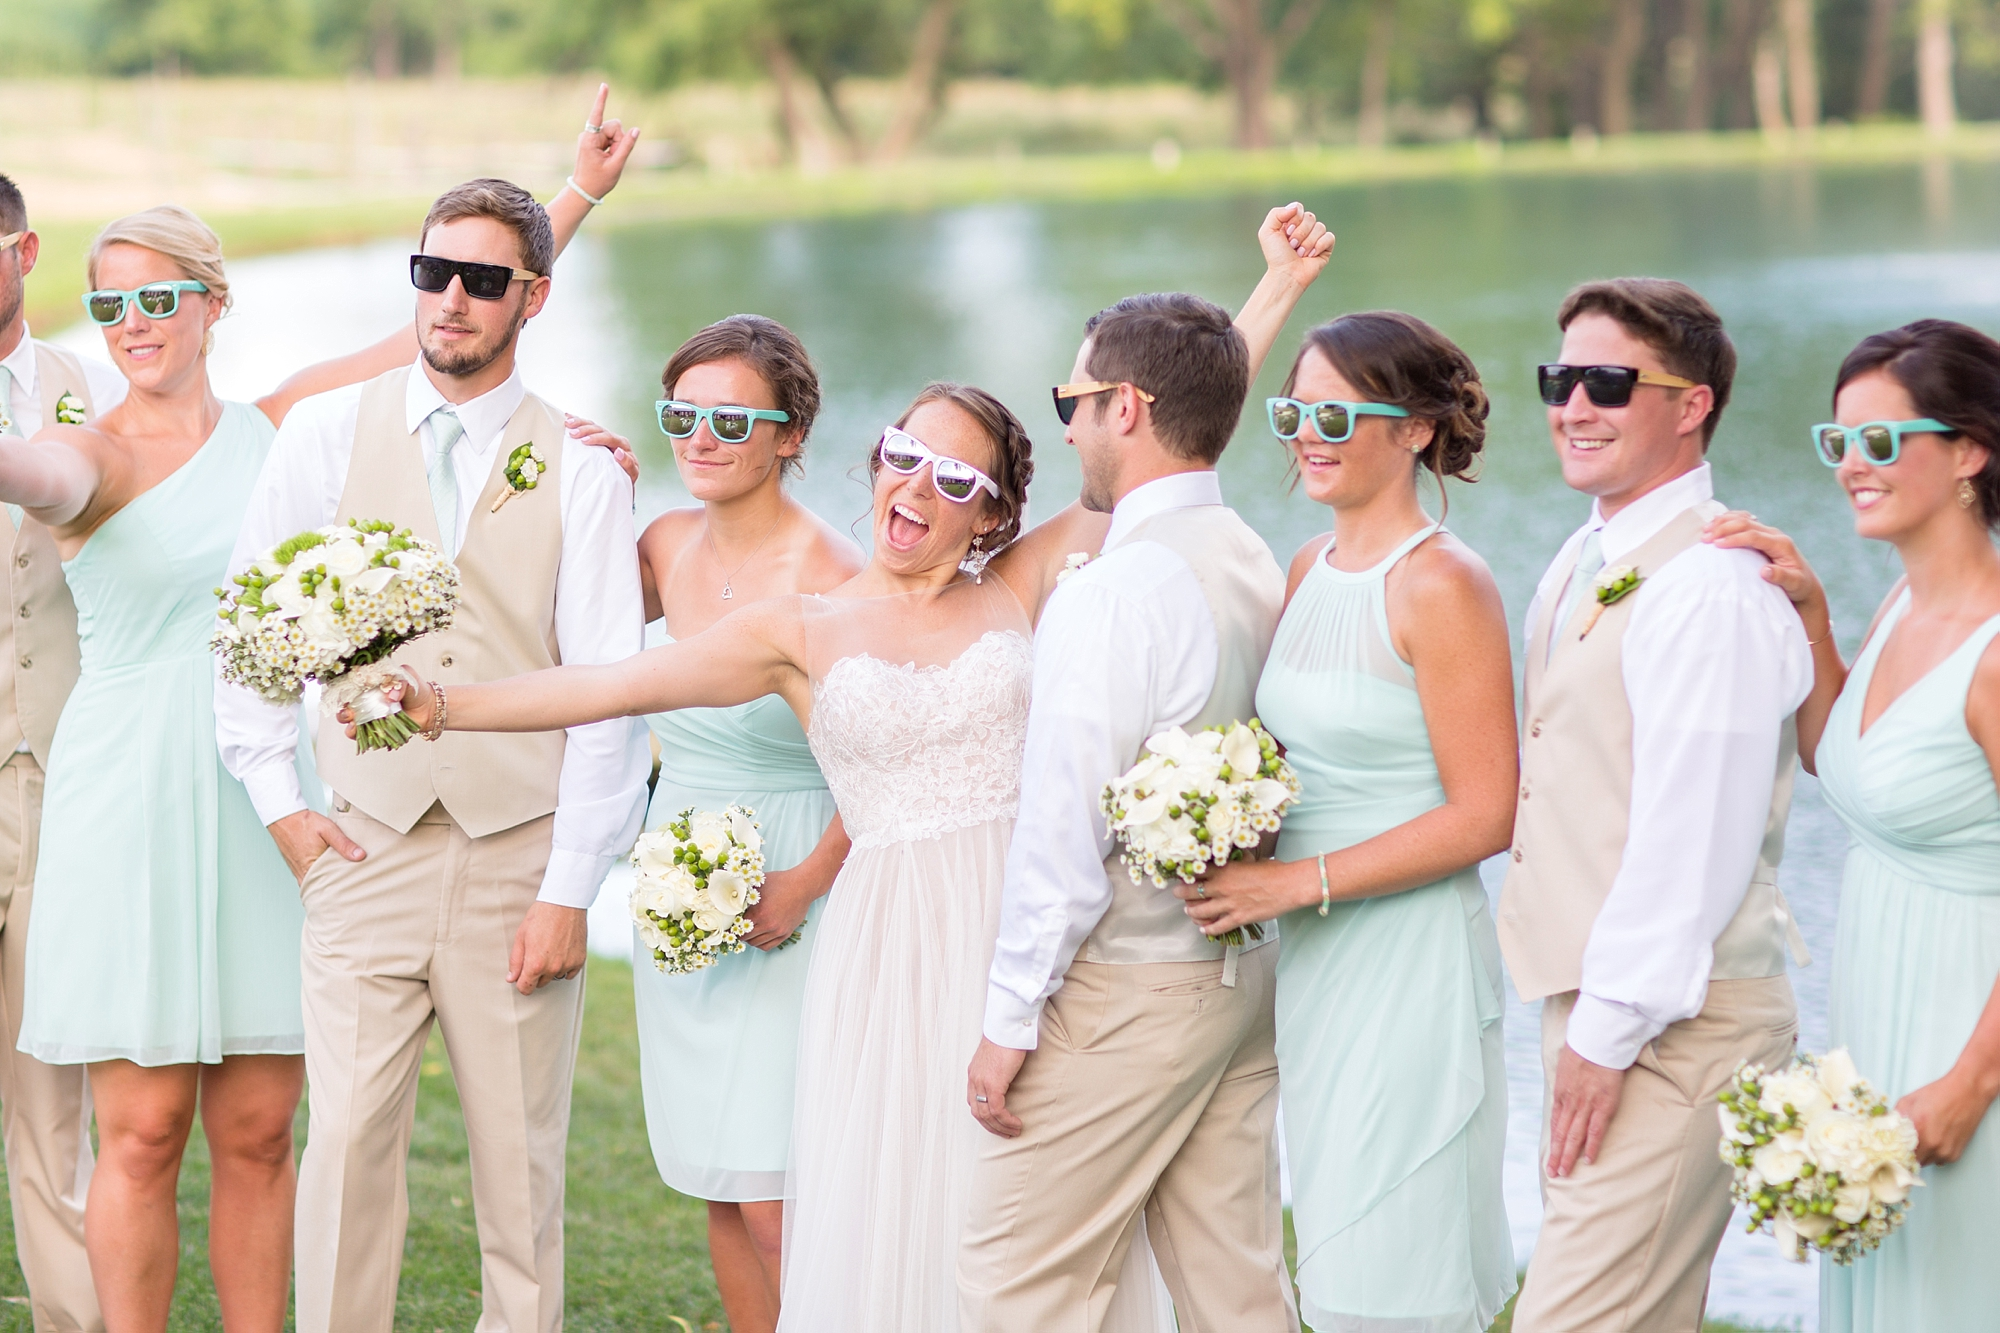 Herndon 2-Bridal Party-645_anna grace photography baltimore maryland wedding photographer pond view farm photo.jpg